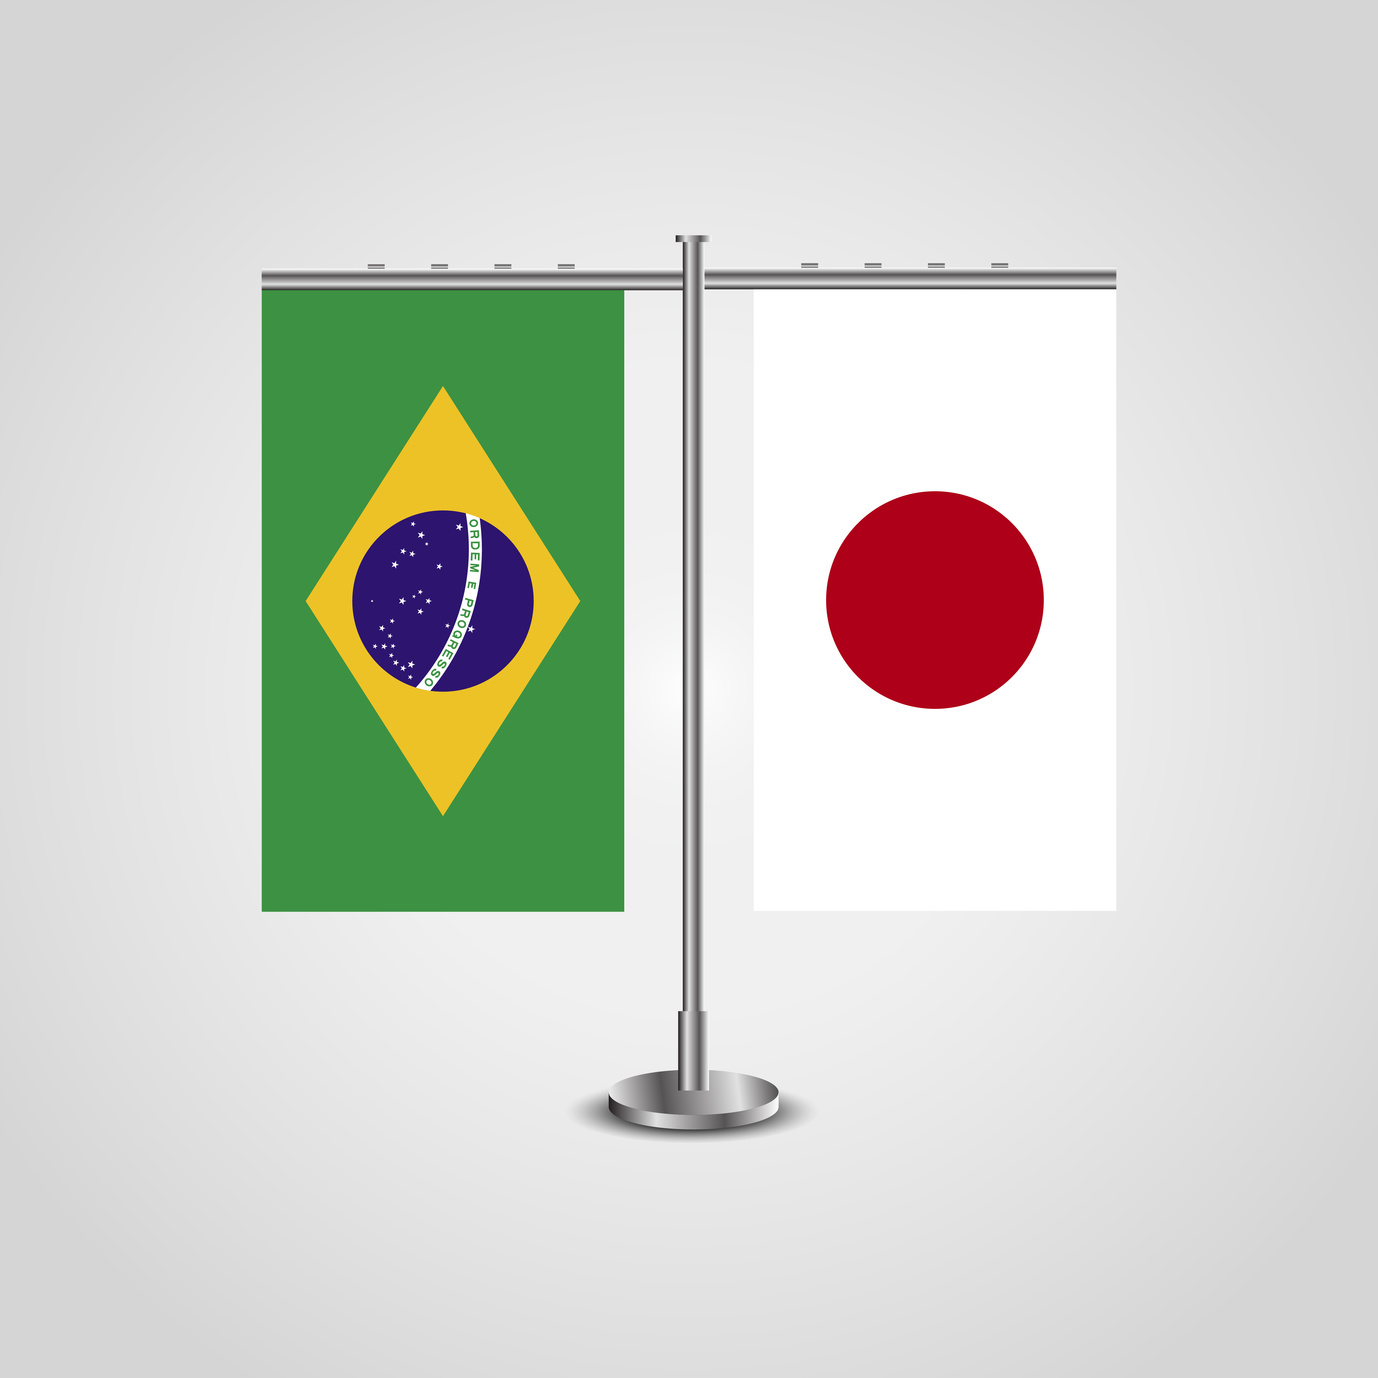 Payments between Japan and Brazil using Ripple's technology are on the way